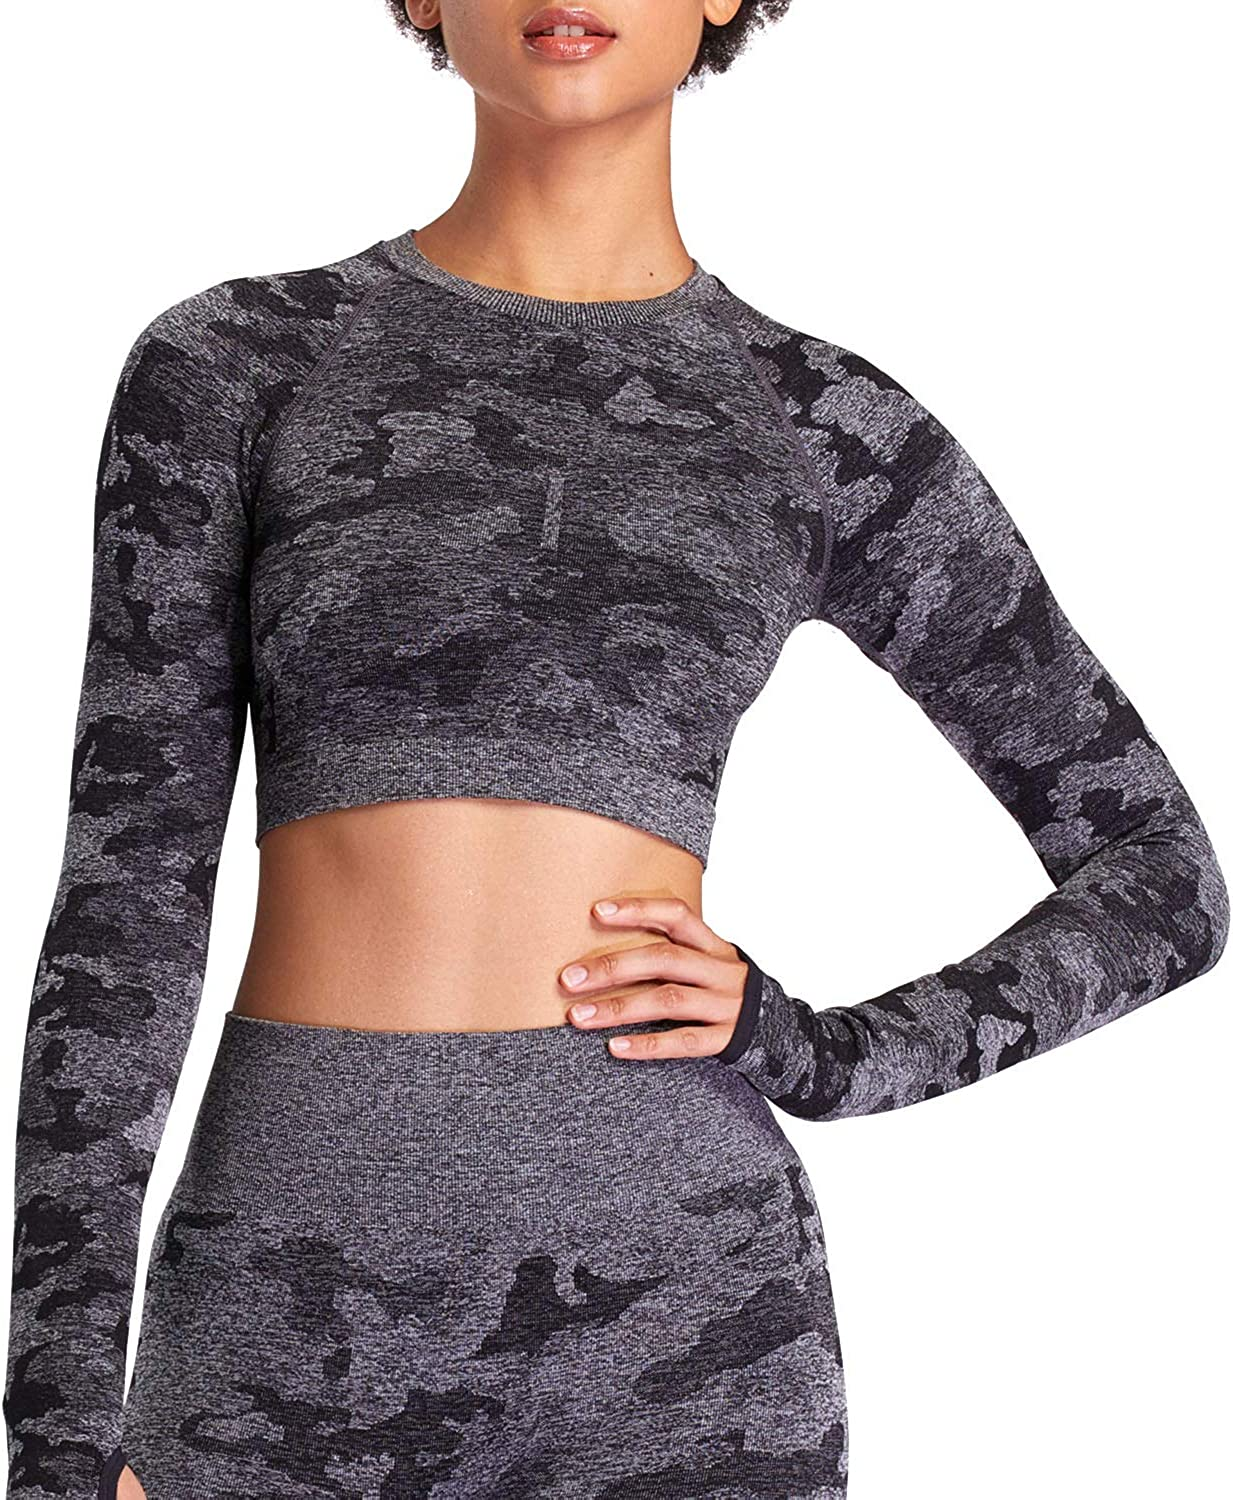 Aoxjox Women's Workout Adapt Super-cheap Camo Top Crop Sleeve Long Seamless NEW before selling ☆